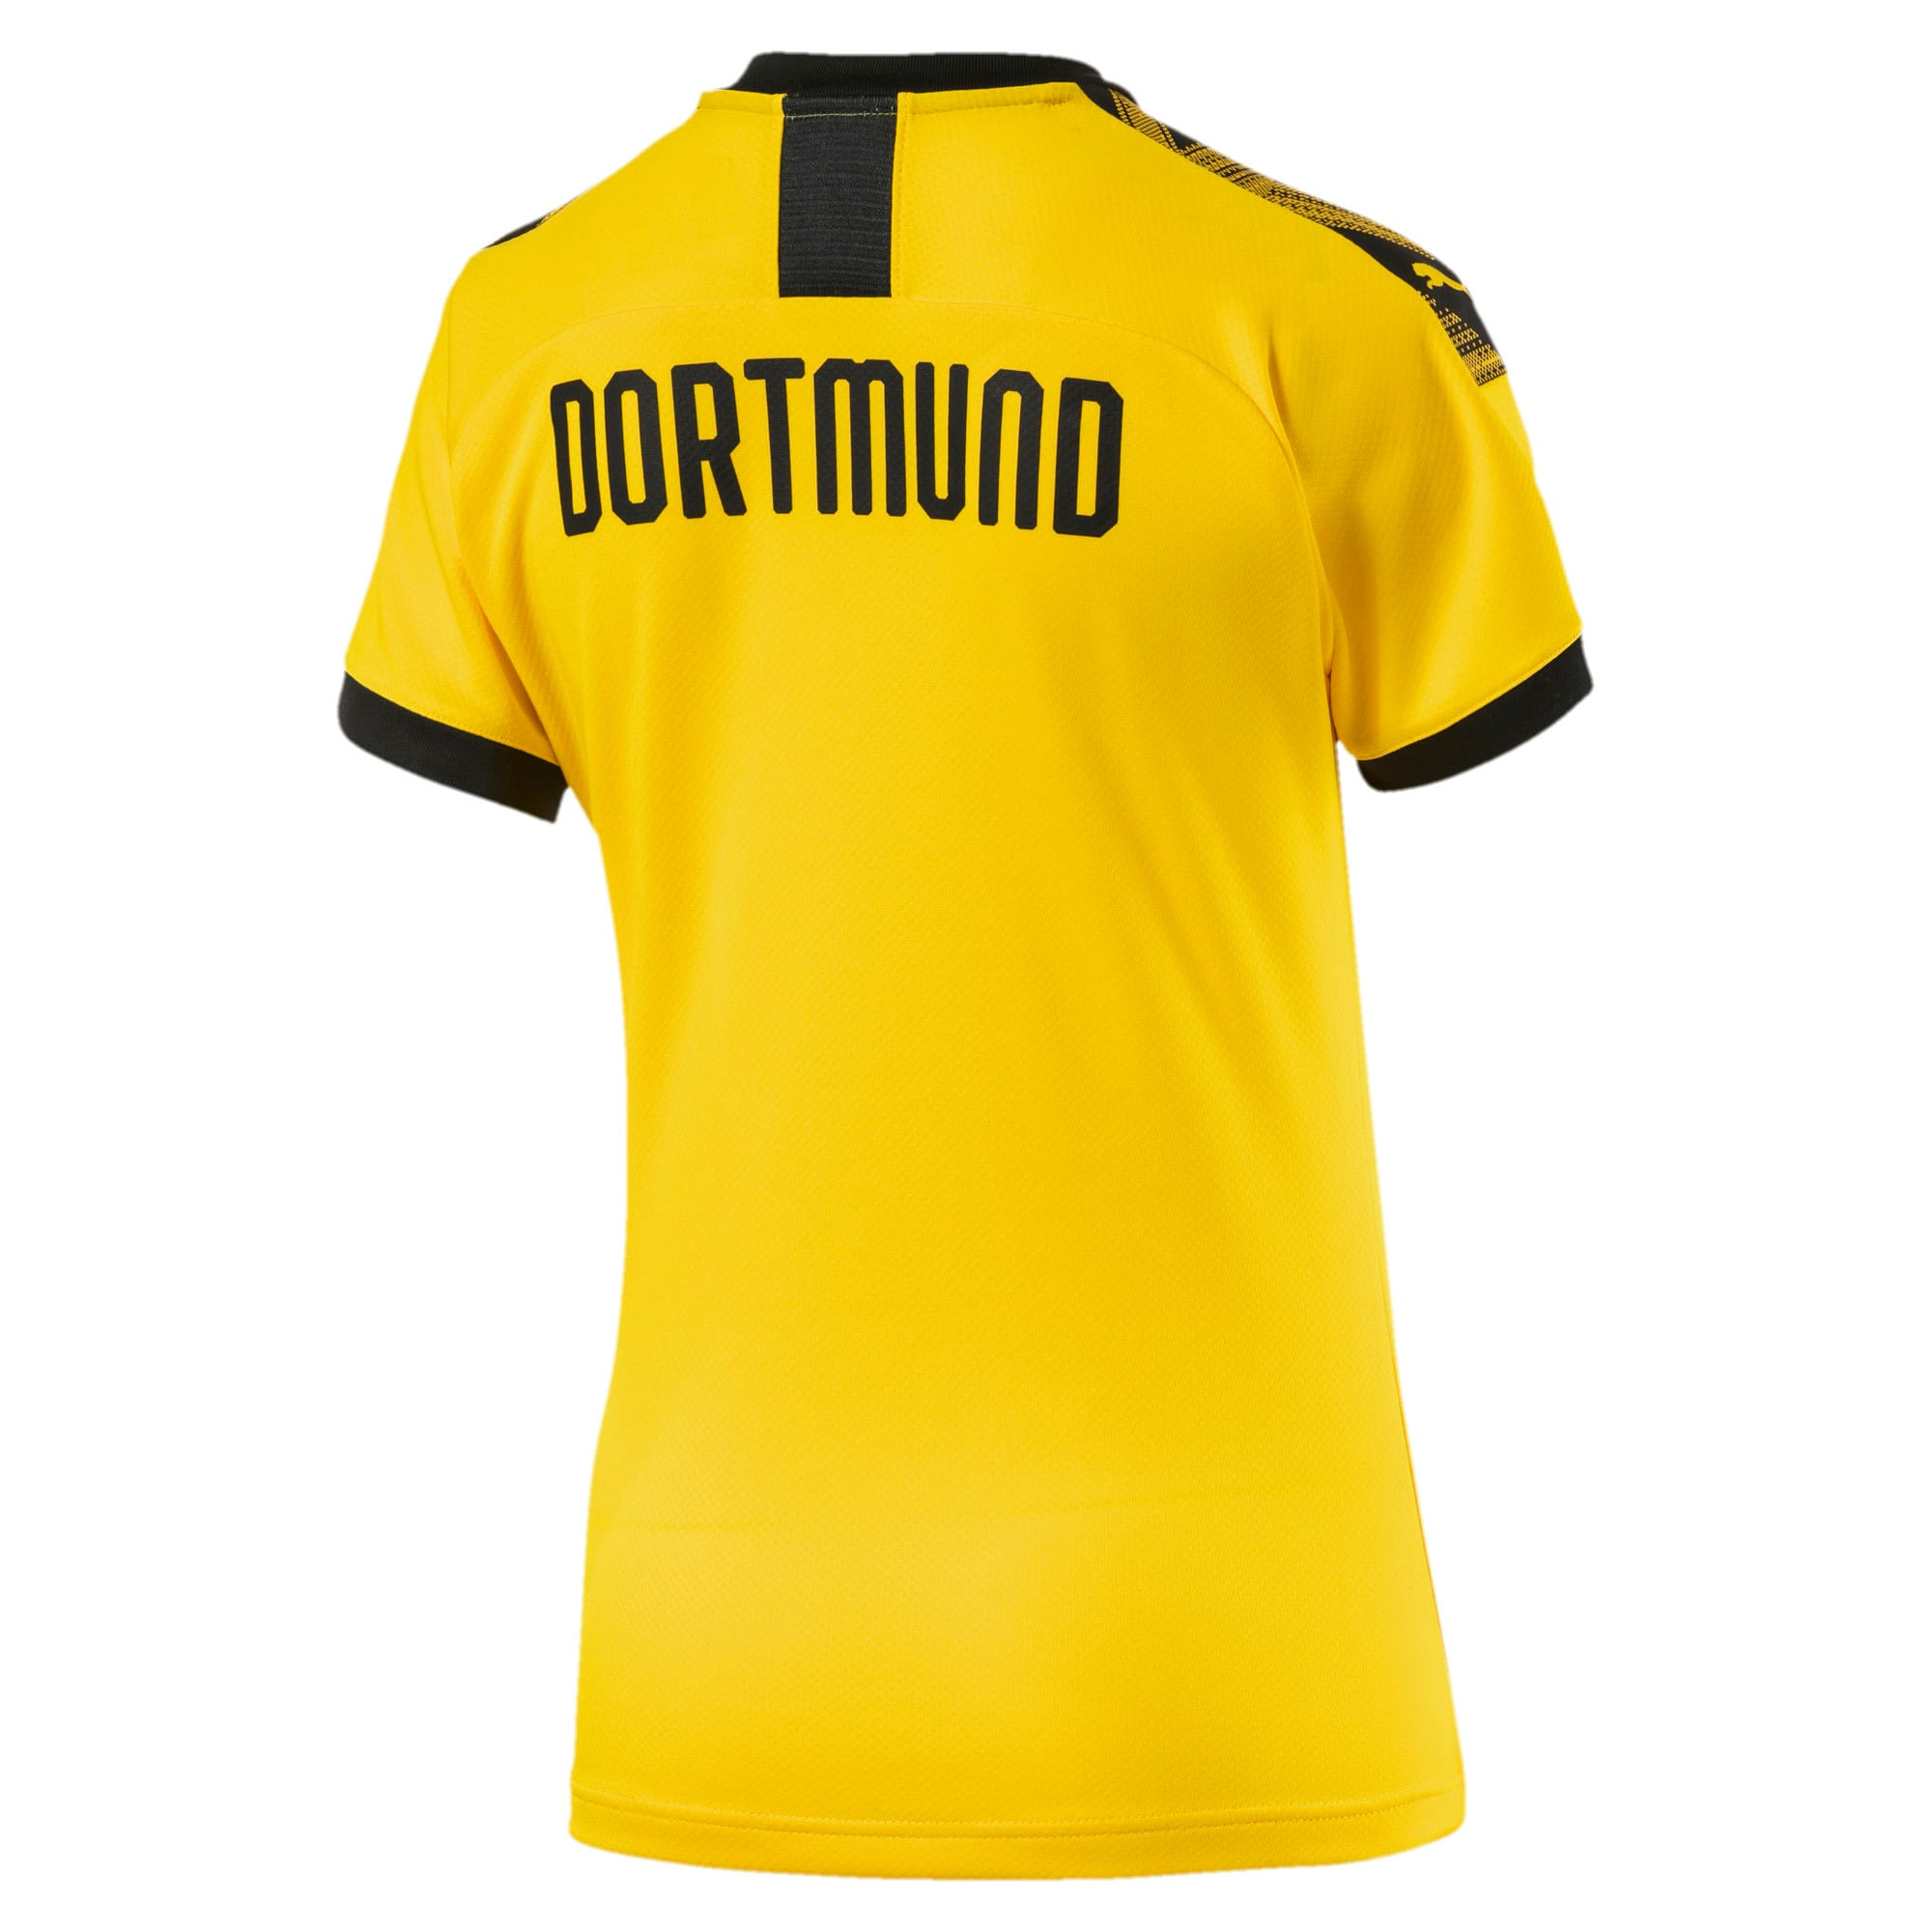 Thumbnail 2 of BVB Women's Home Replica Jersey, Cyber Yellow-Puma Black, medium